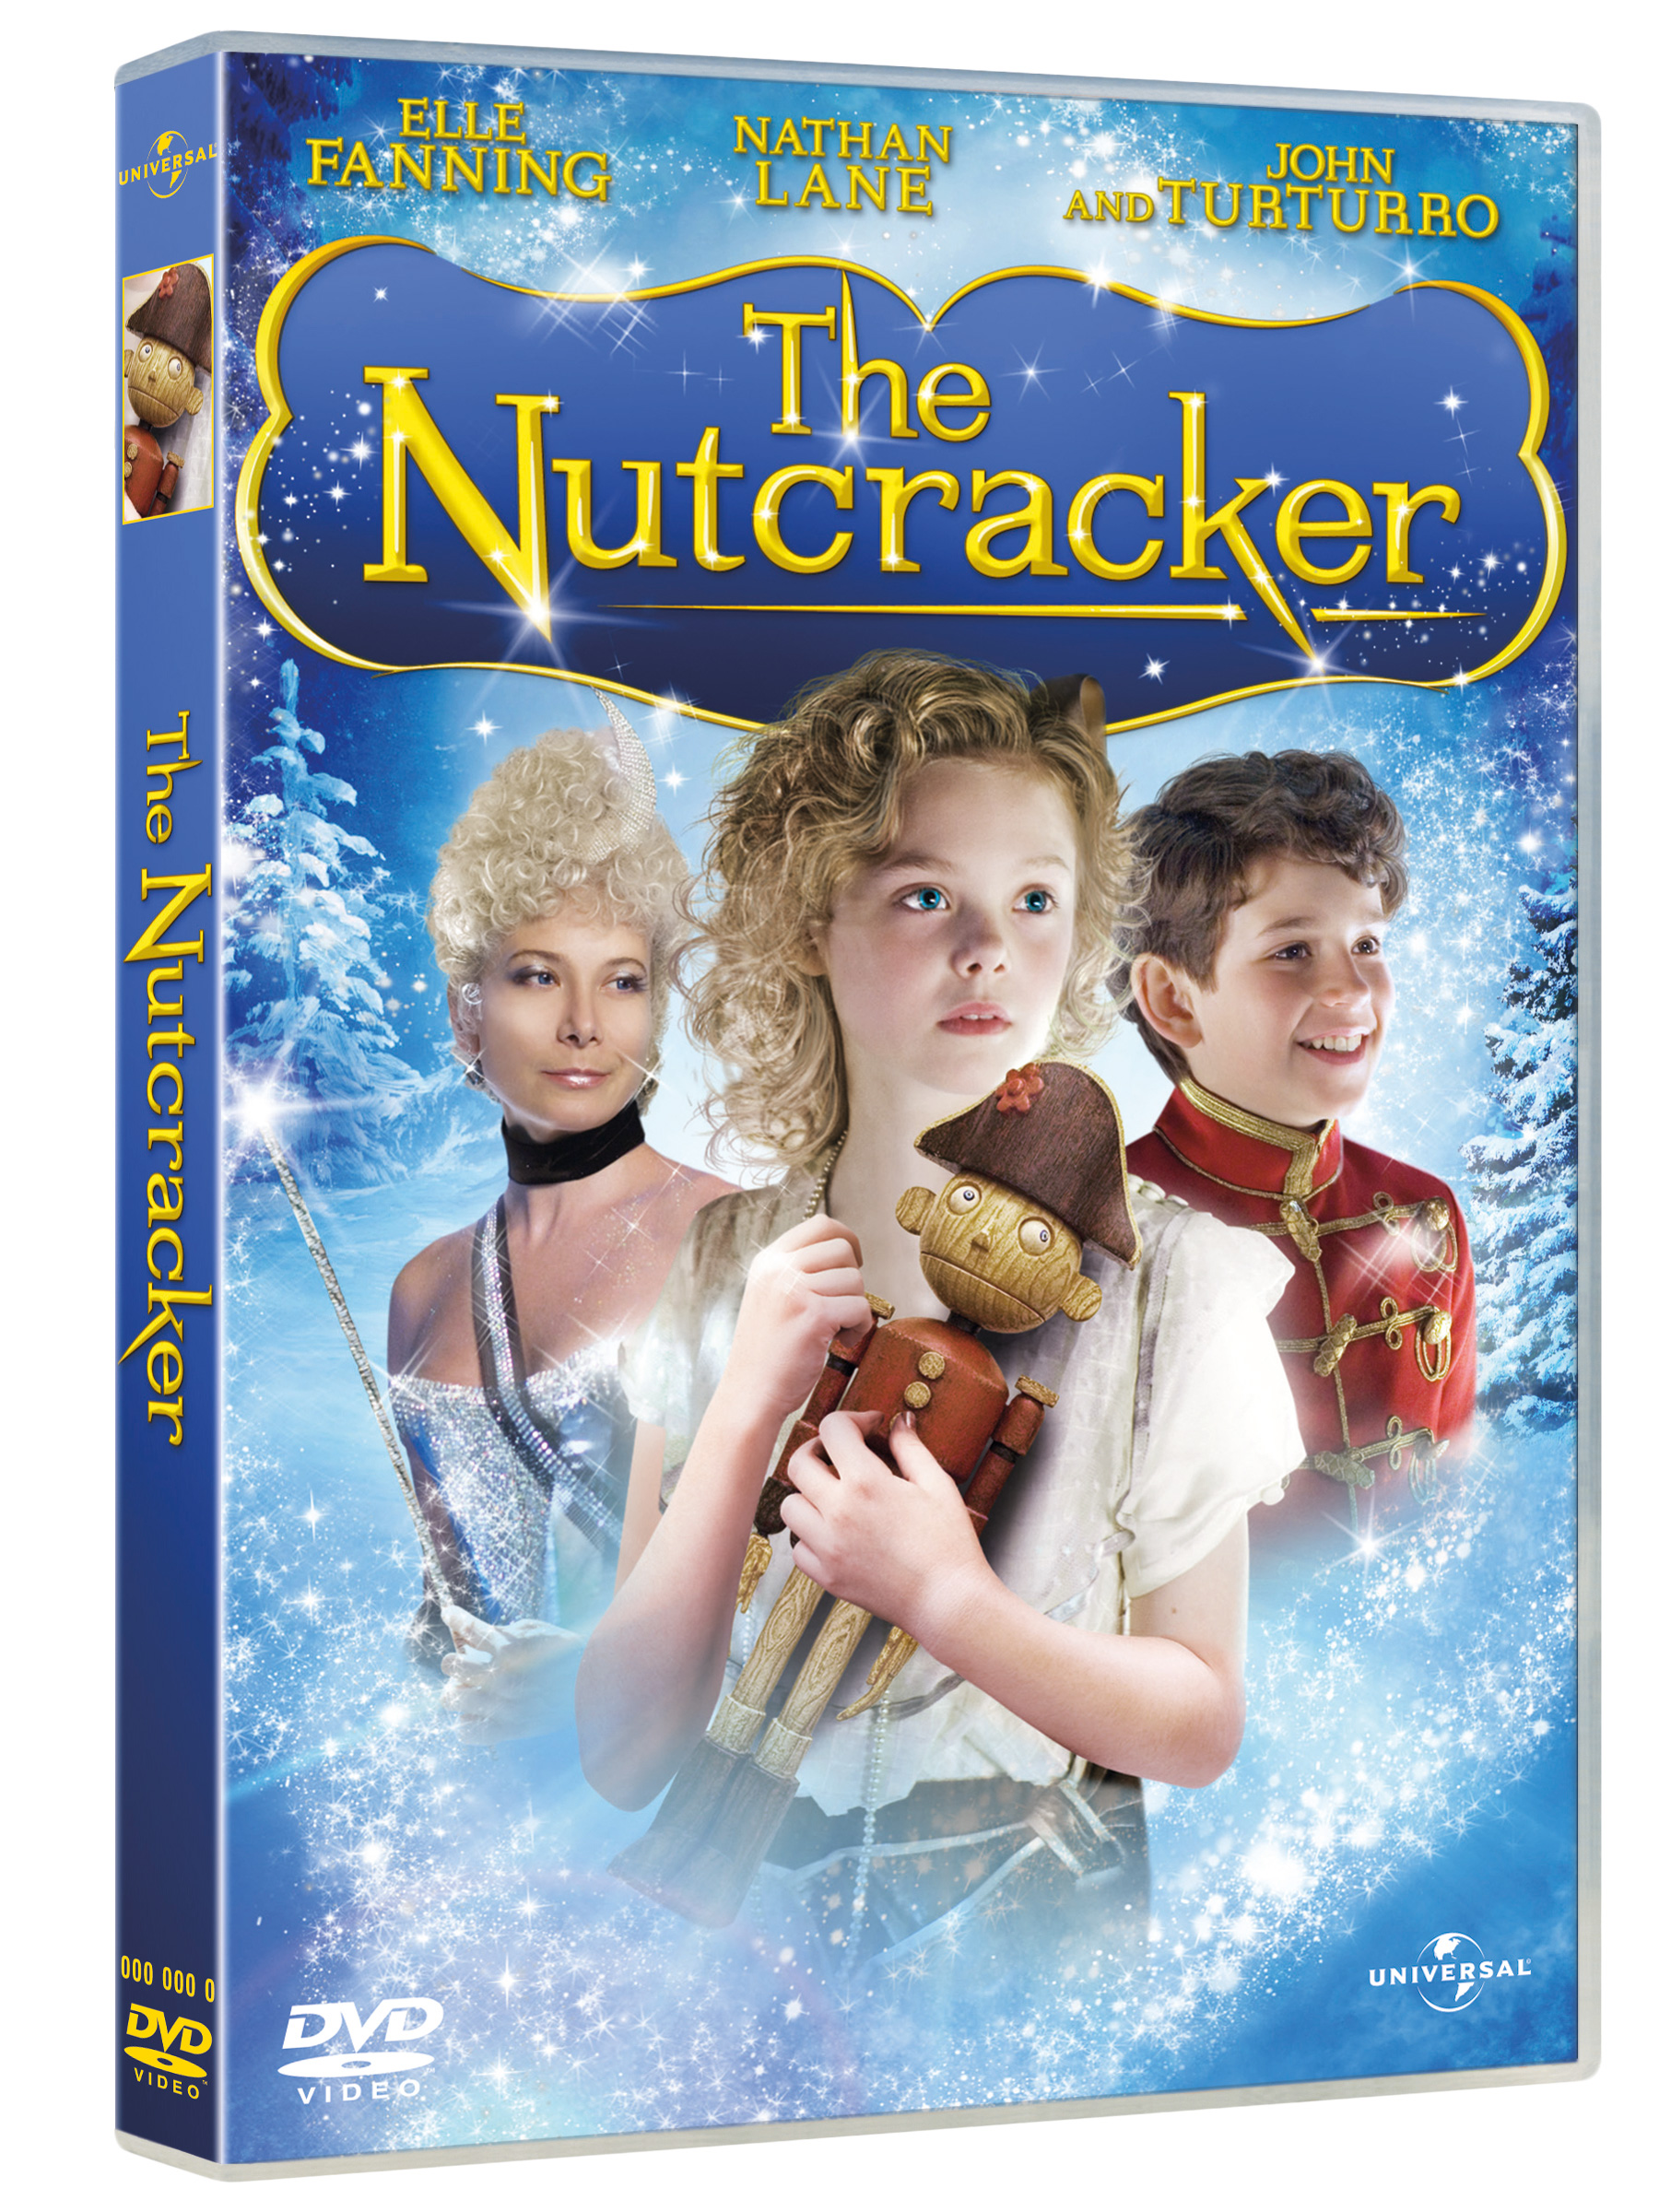 The Nutcracker DVD